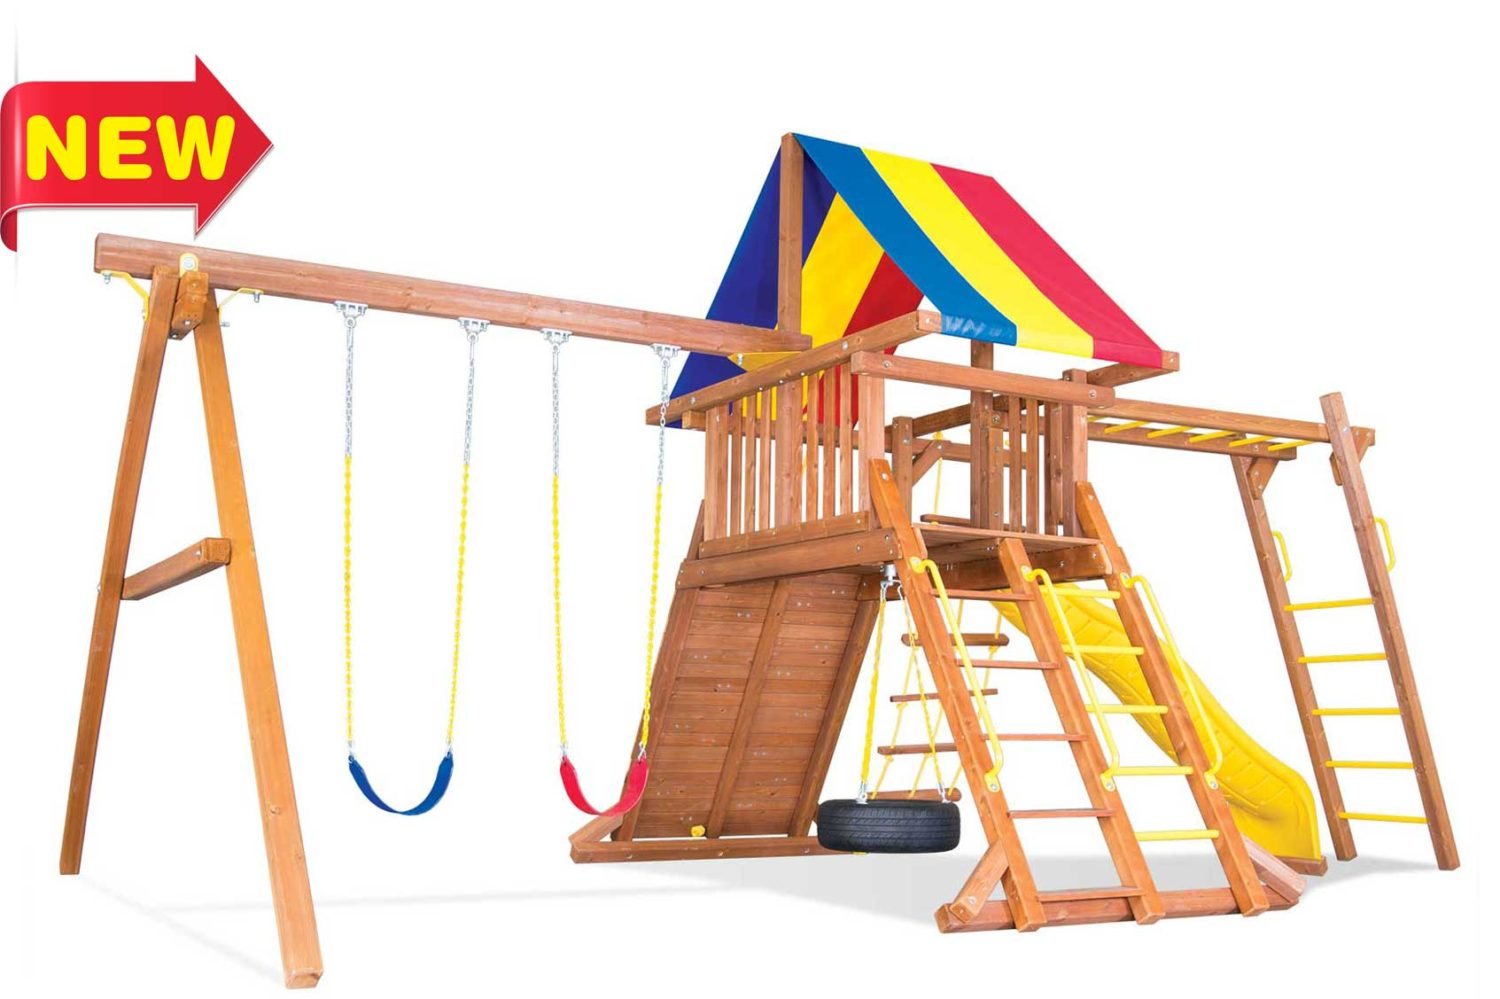 Circus Turbo Castle Pkg III with Monkey Bars Wooden Swing Sets